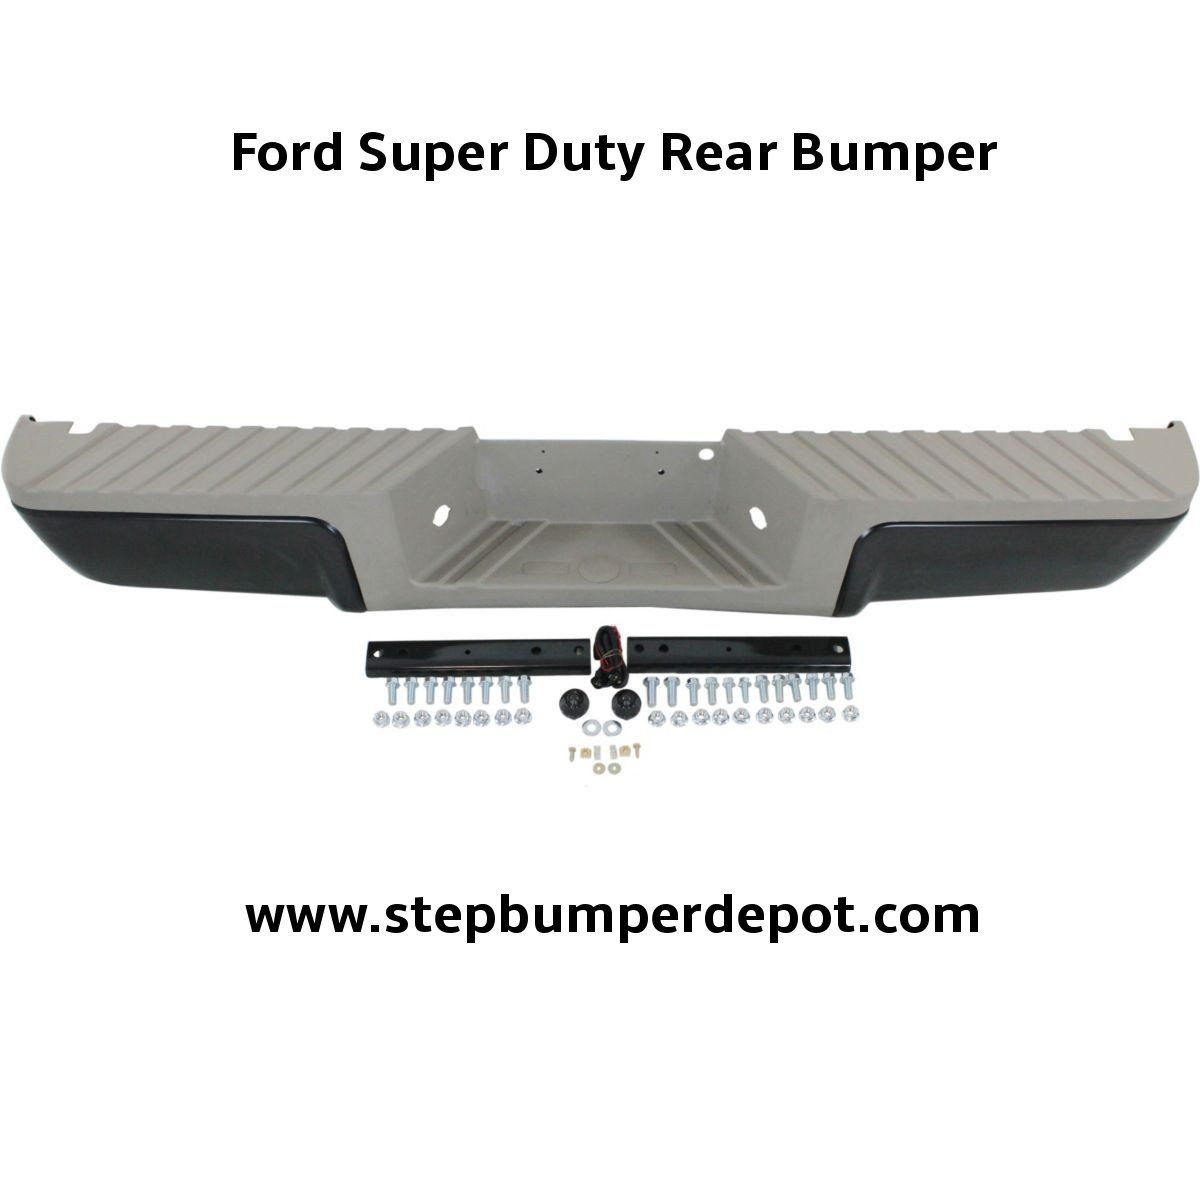 Oem Replacement Rear Bumper With Gold Pads For Ford Super Duty 2008 2016 Ford Super Duty Truck Bumpers Bumpers